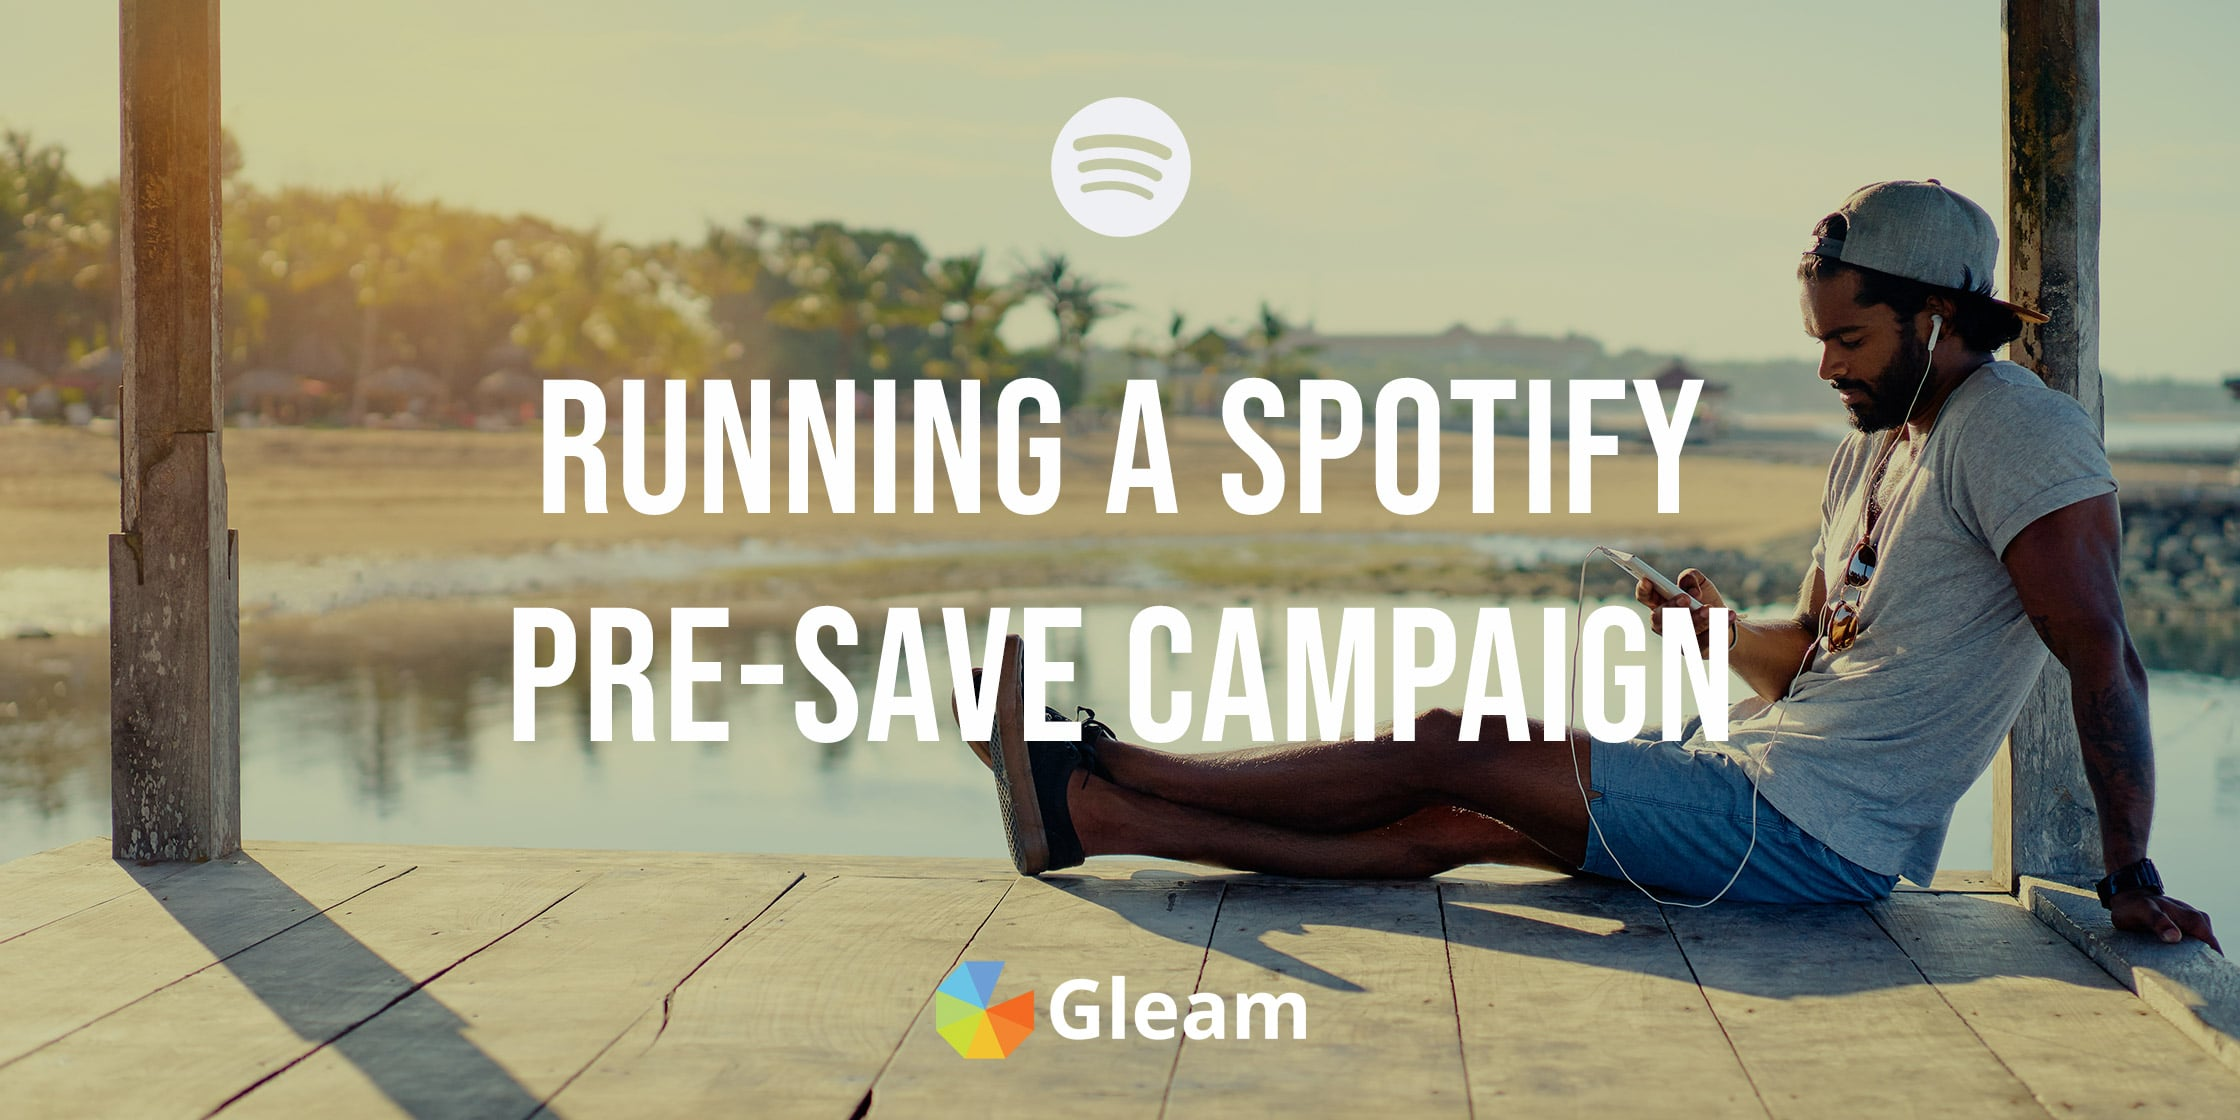 How to Boost Your Spotify Listens With Pre-Save Campaigns